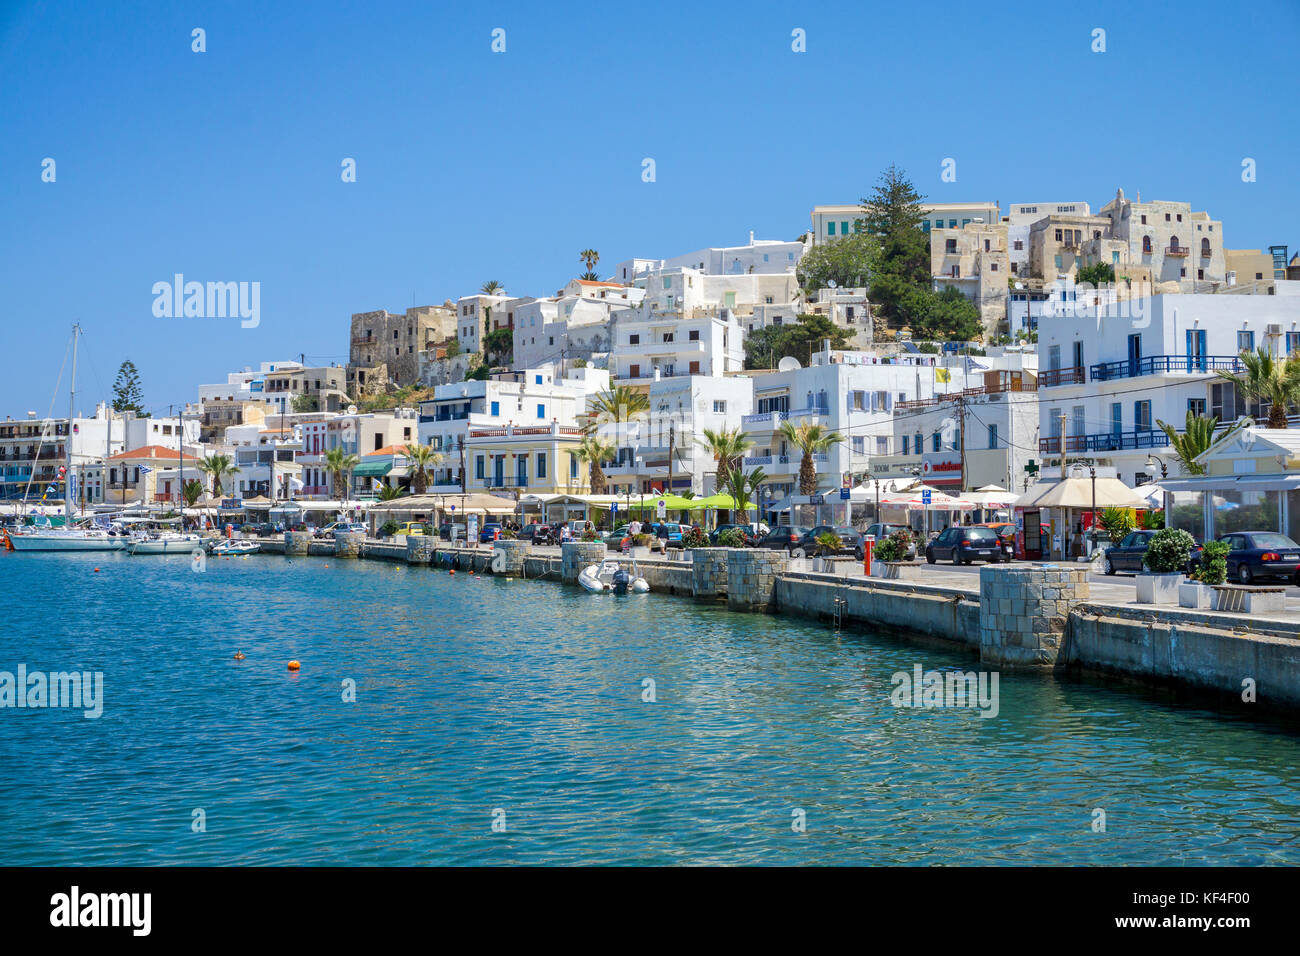 Naxos-town with Castro and harbour promenade, Naxos island, Cyclades, Aegean, Greece - Stock Image